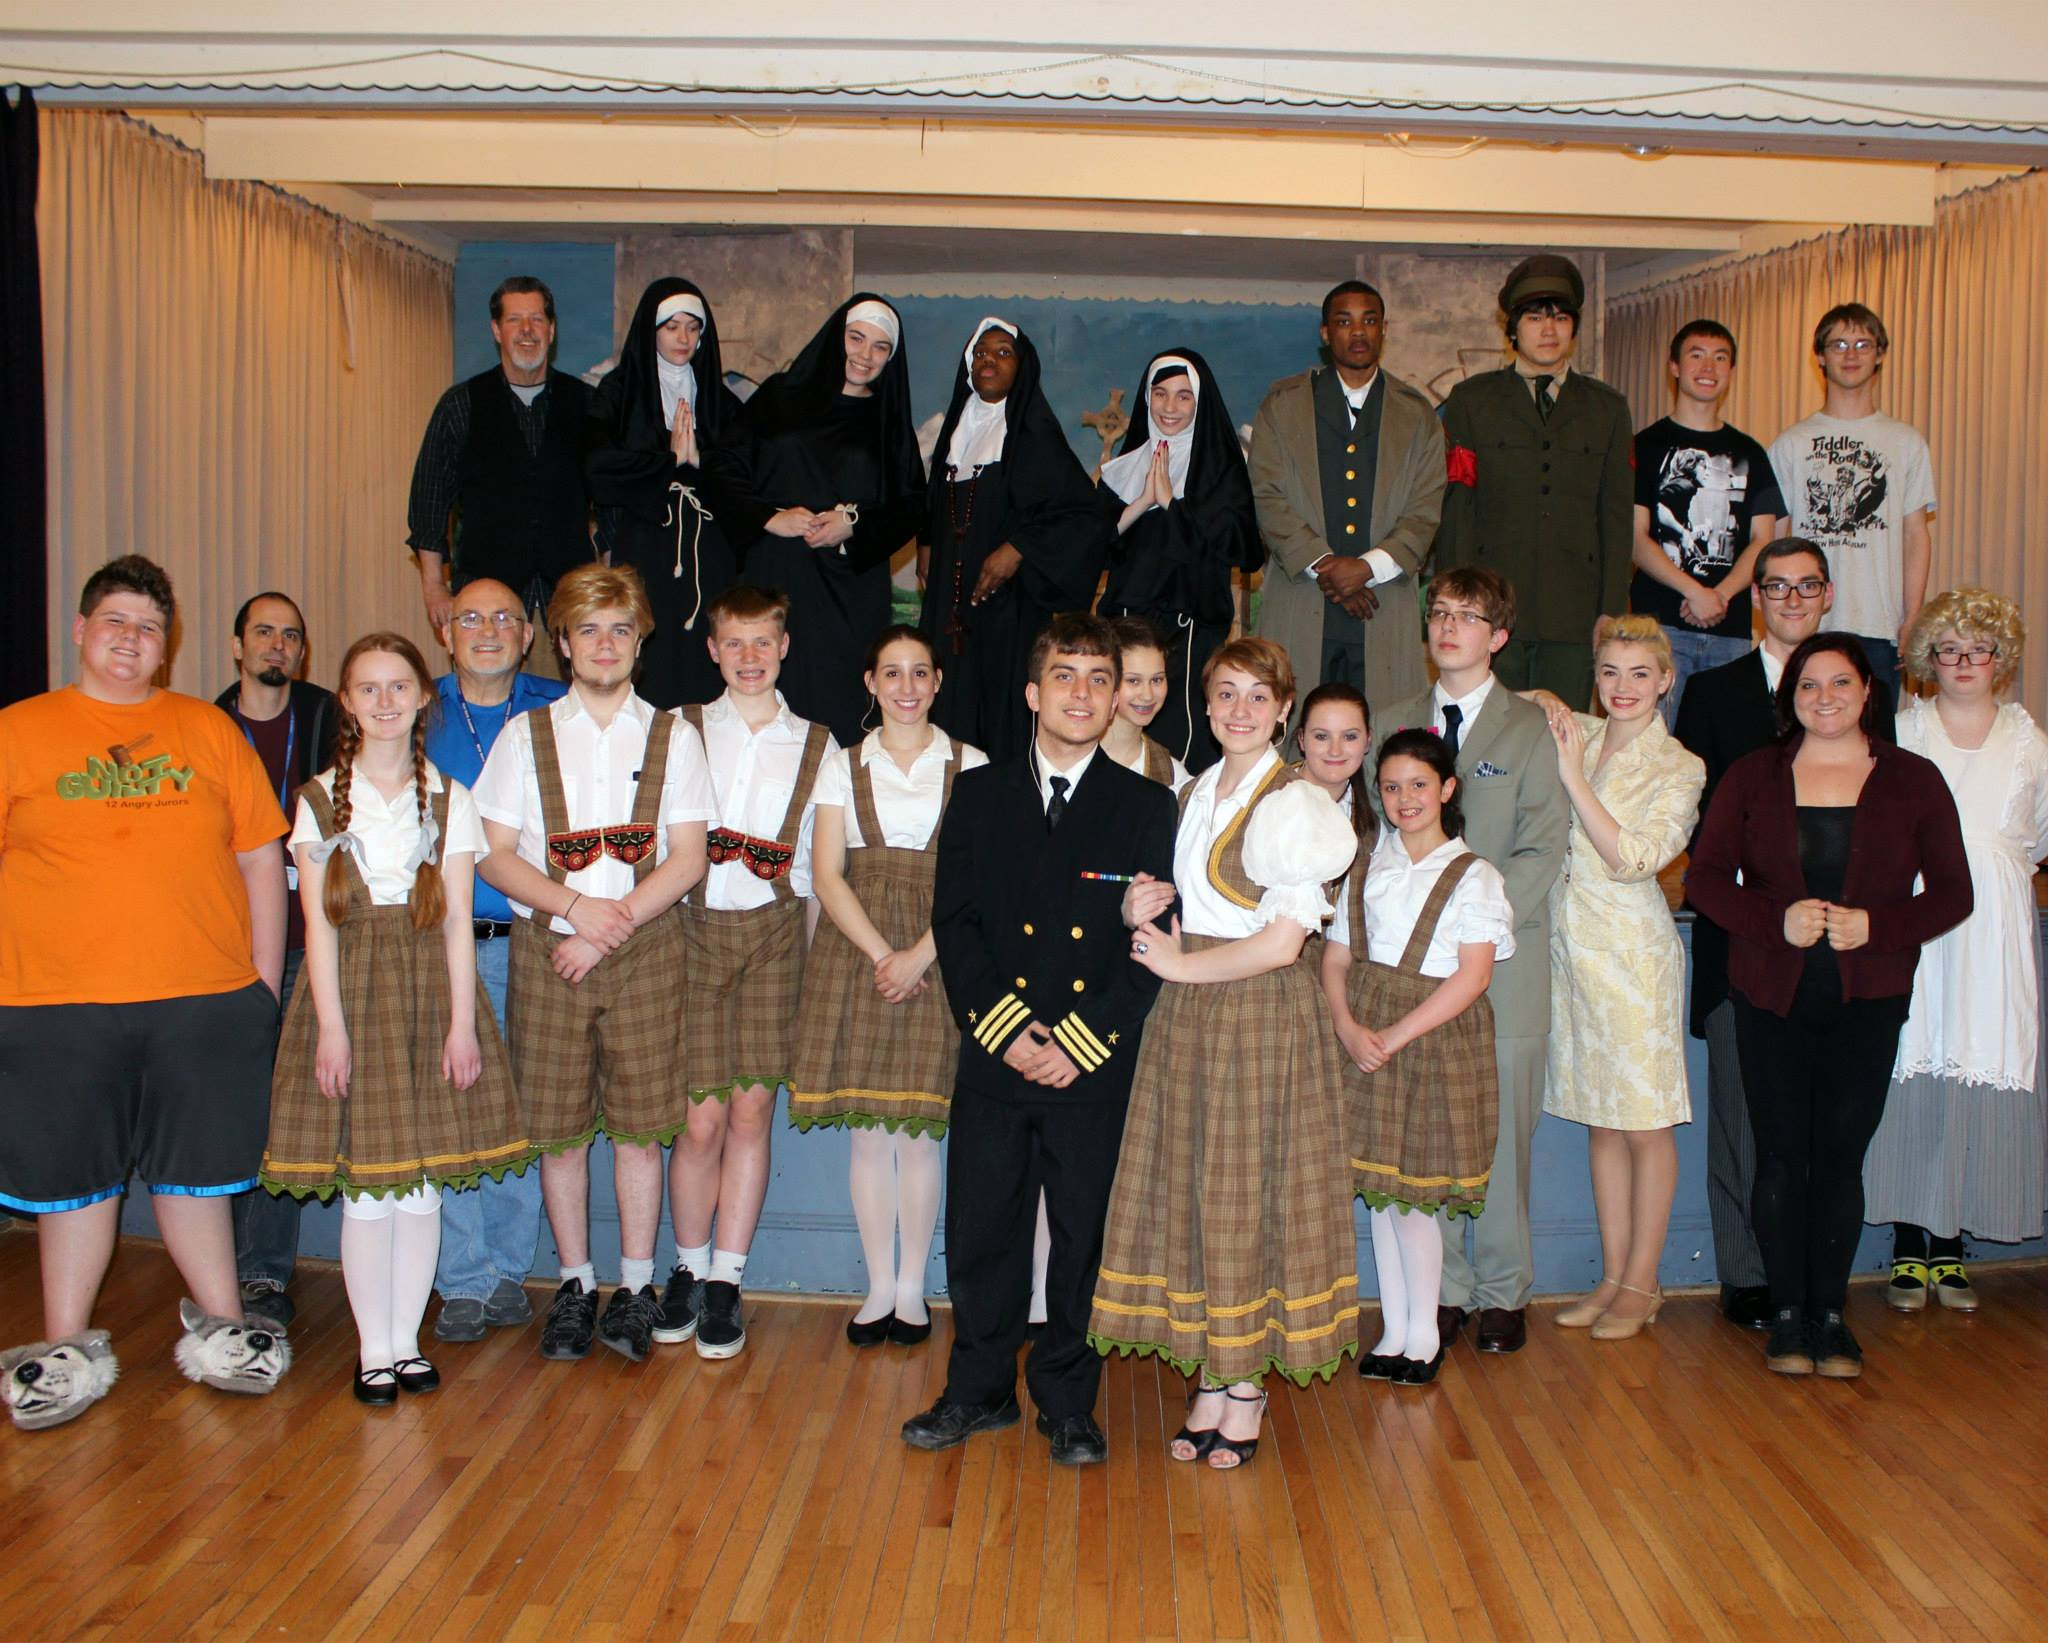 NHA Cast and Crew of The Sound of Music